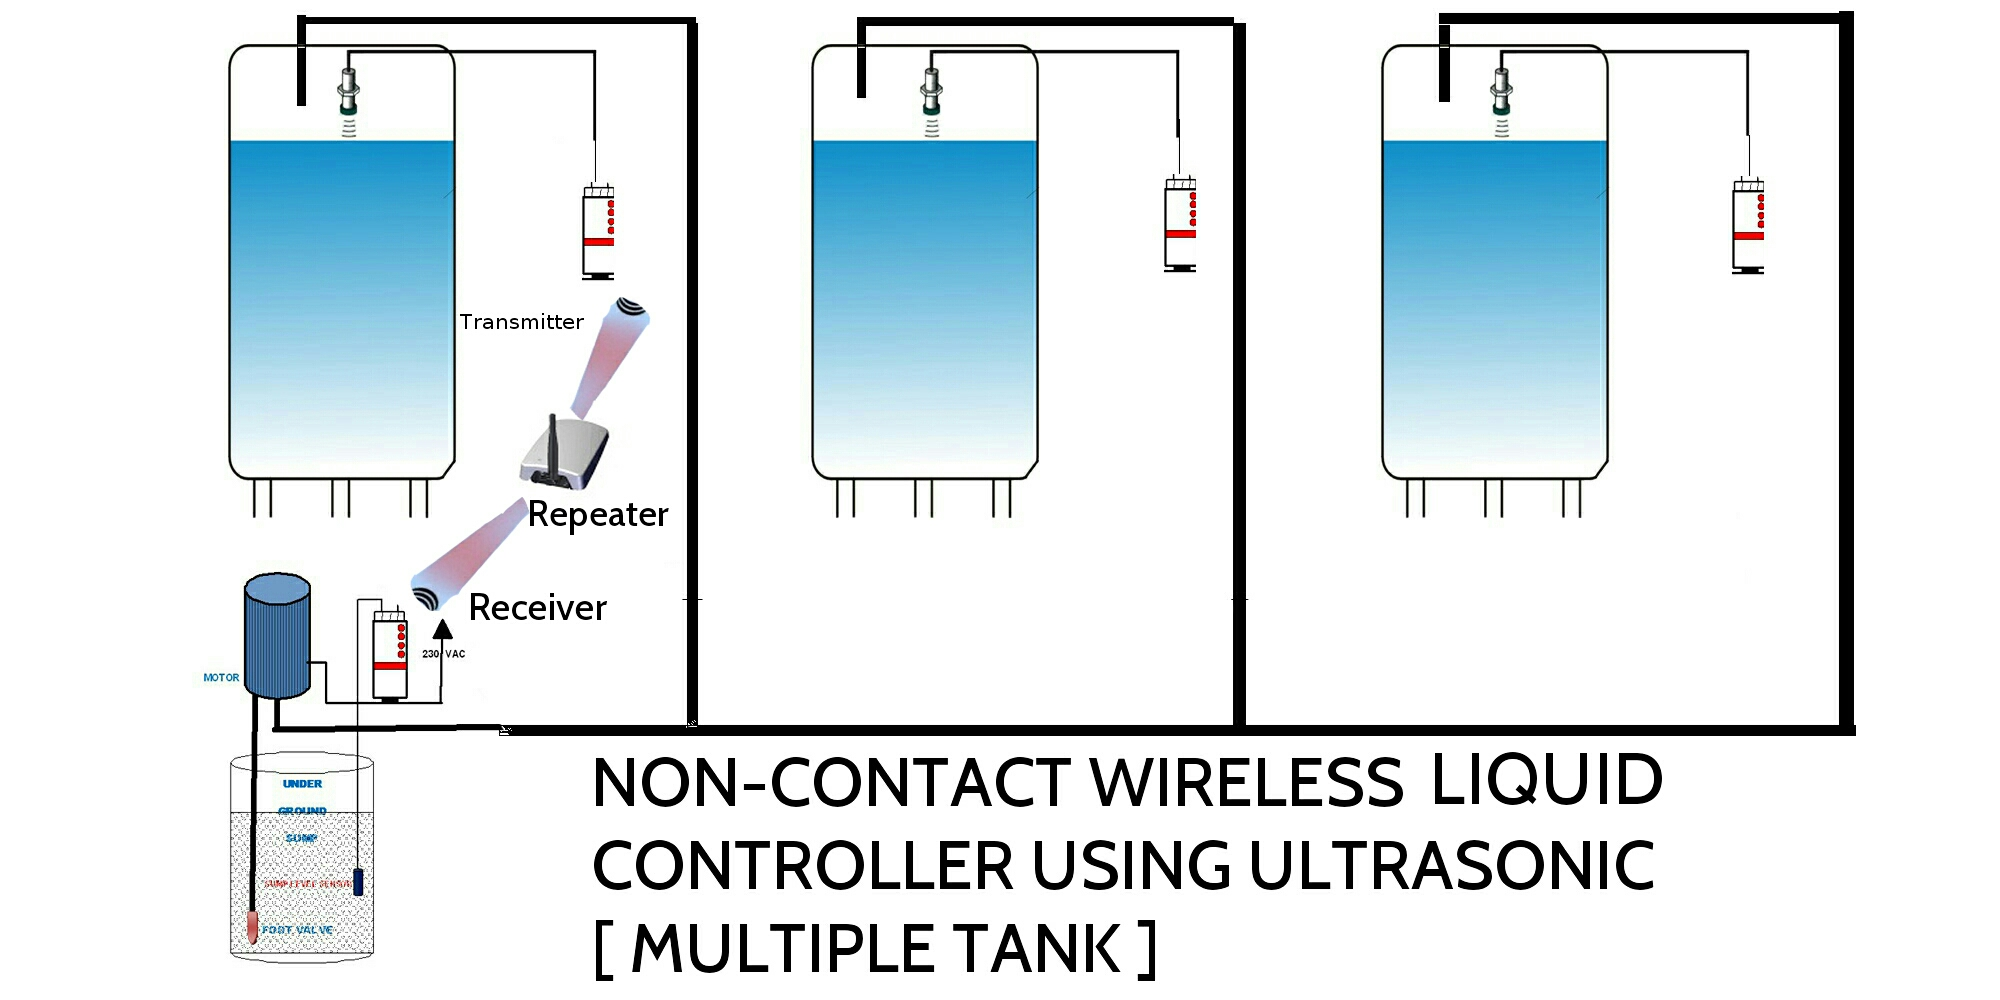 hight resolution of ultrasonic water level sensor installation is simple and requires no programming or calibration no maintenance is required for the ultrasonic water level